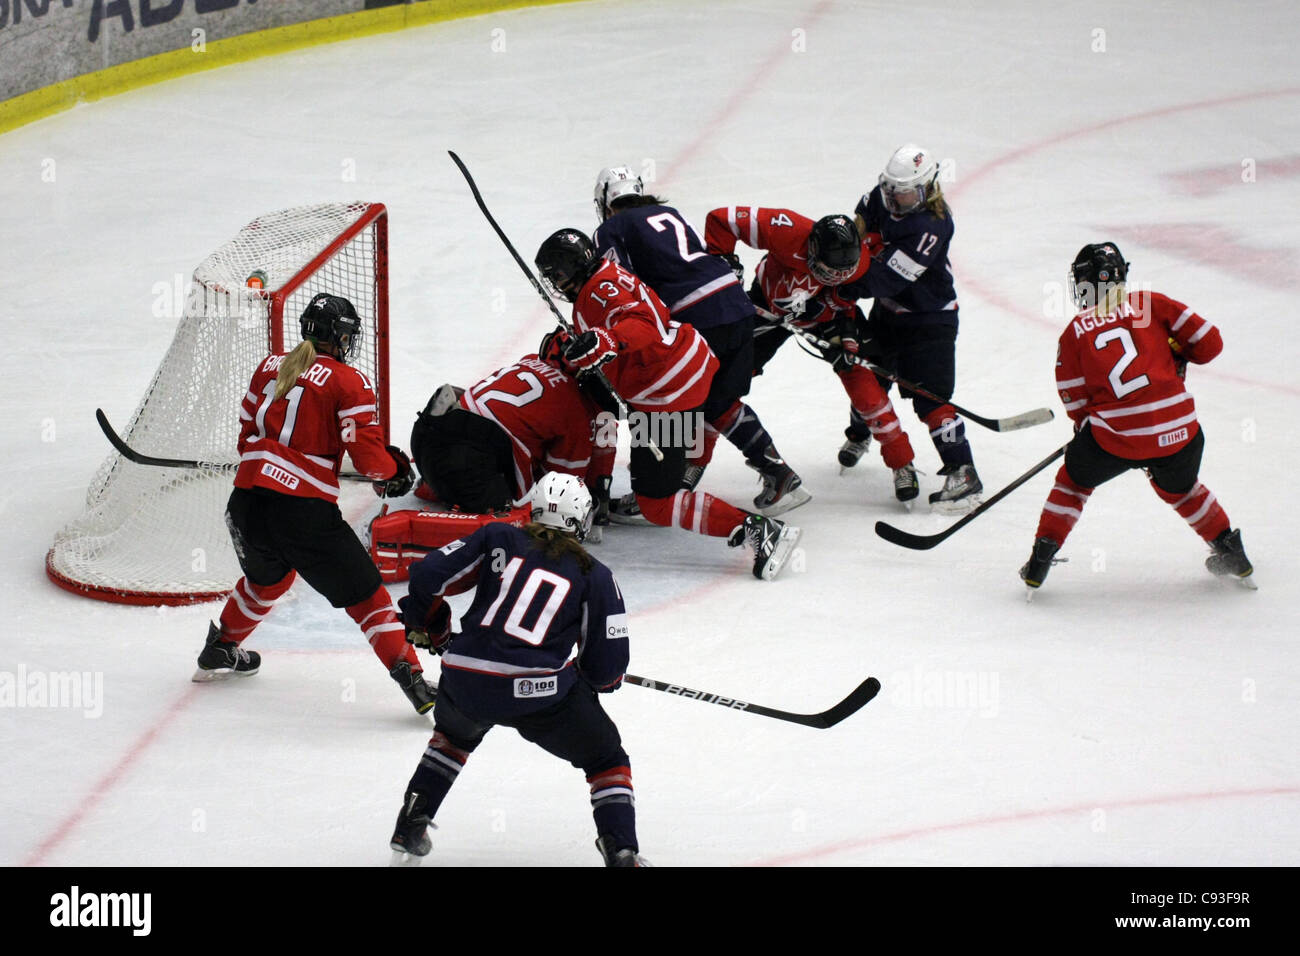 The game between USA and Canada ended 1-3 in the tournament in Nyköping, Sweden - Stock Image